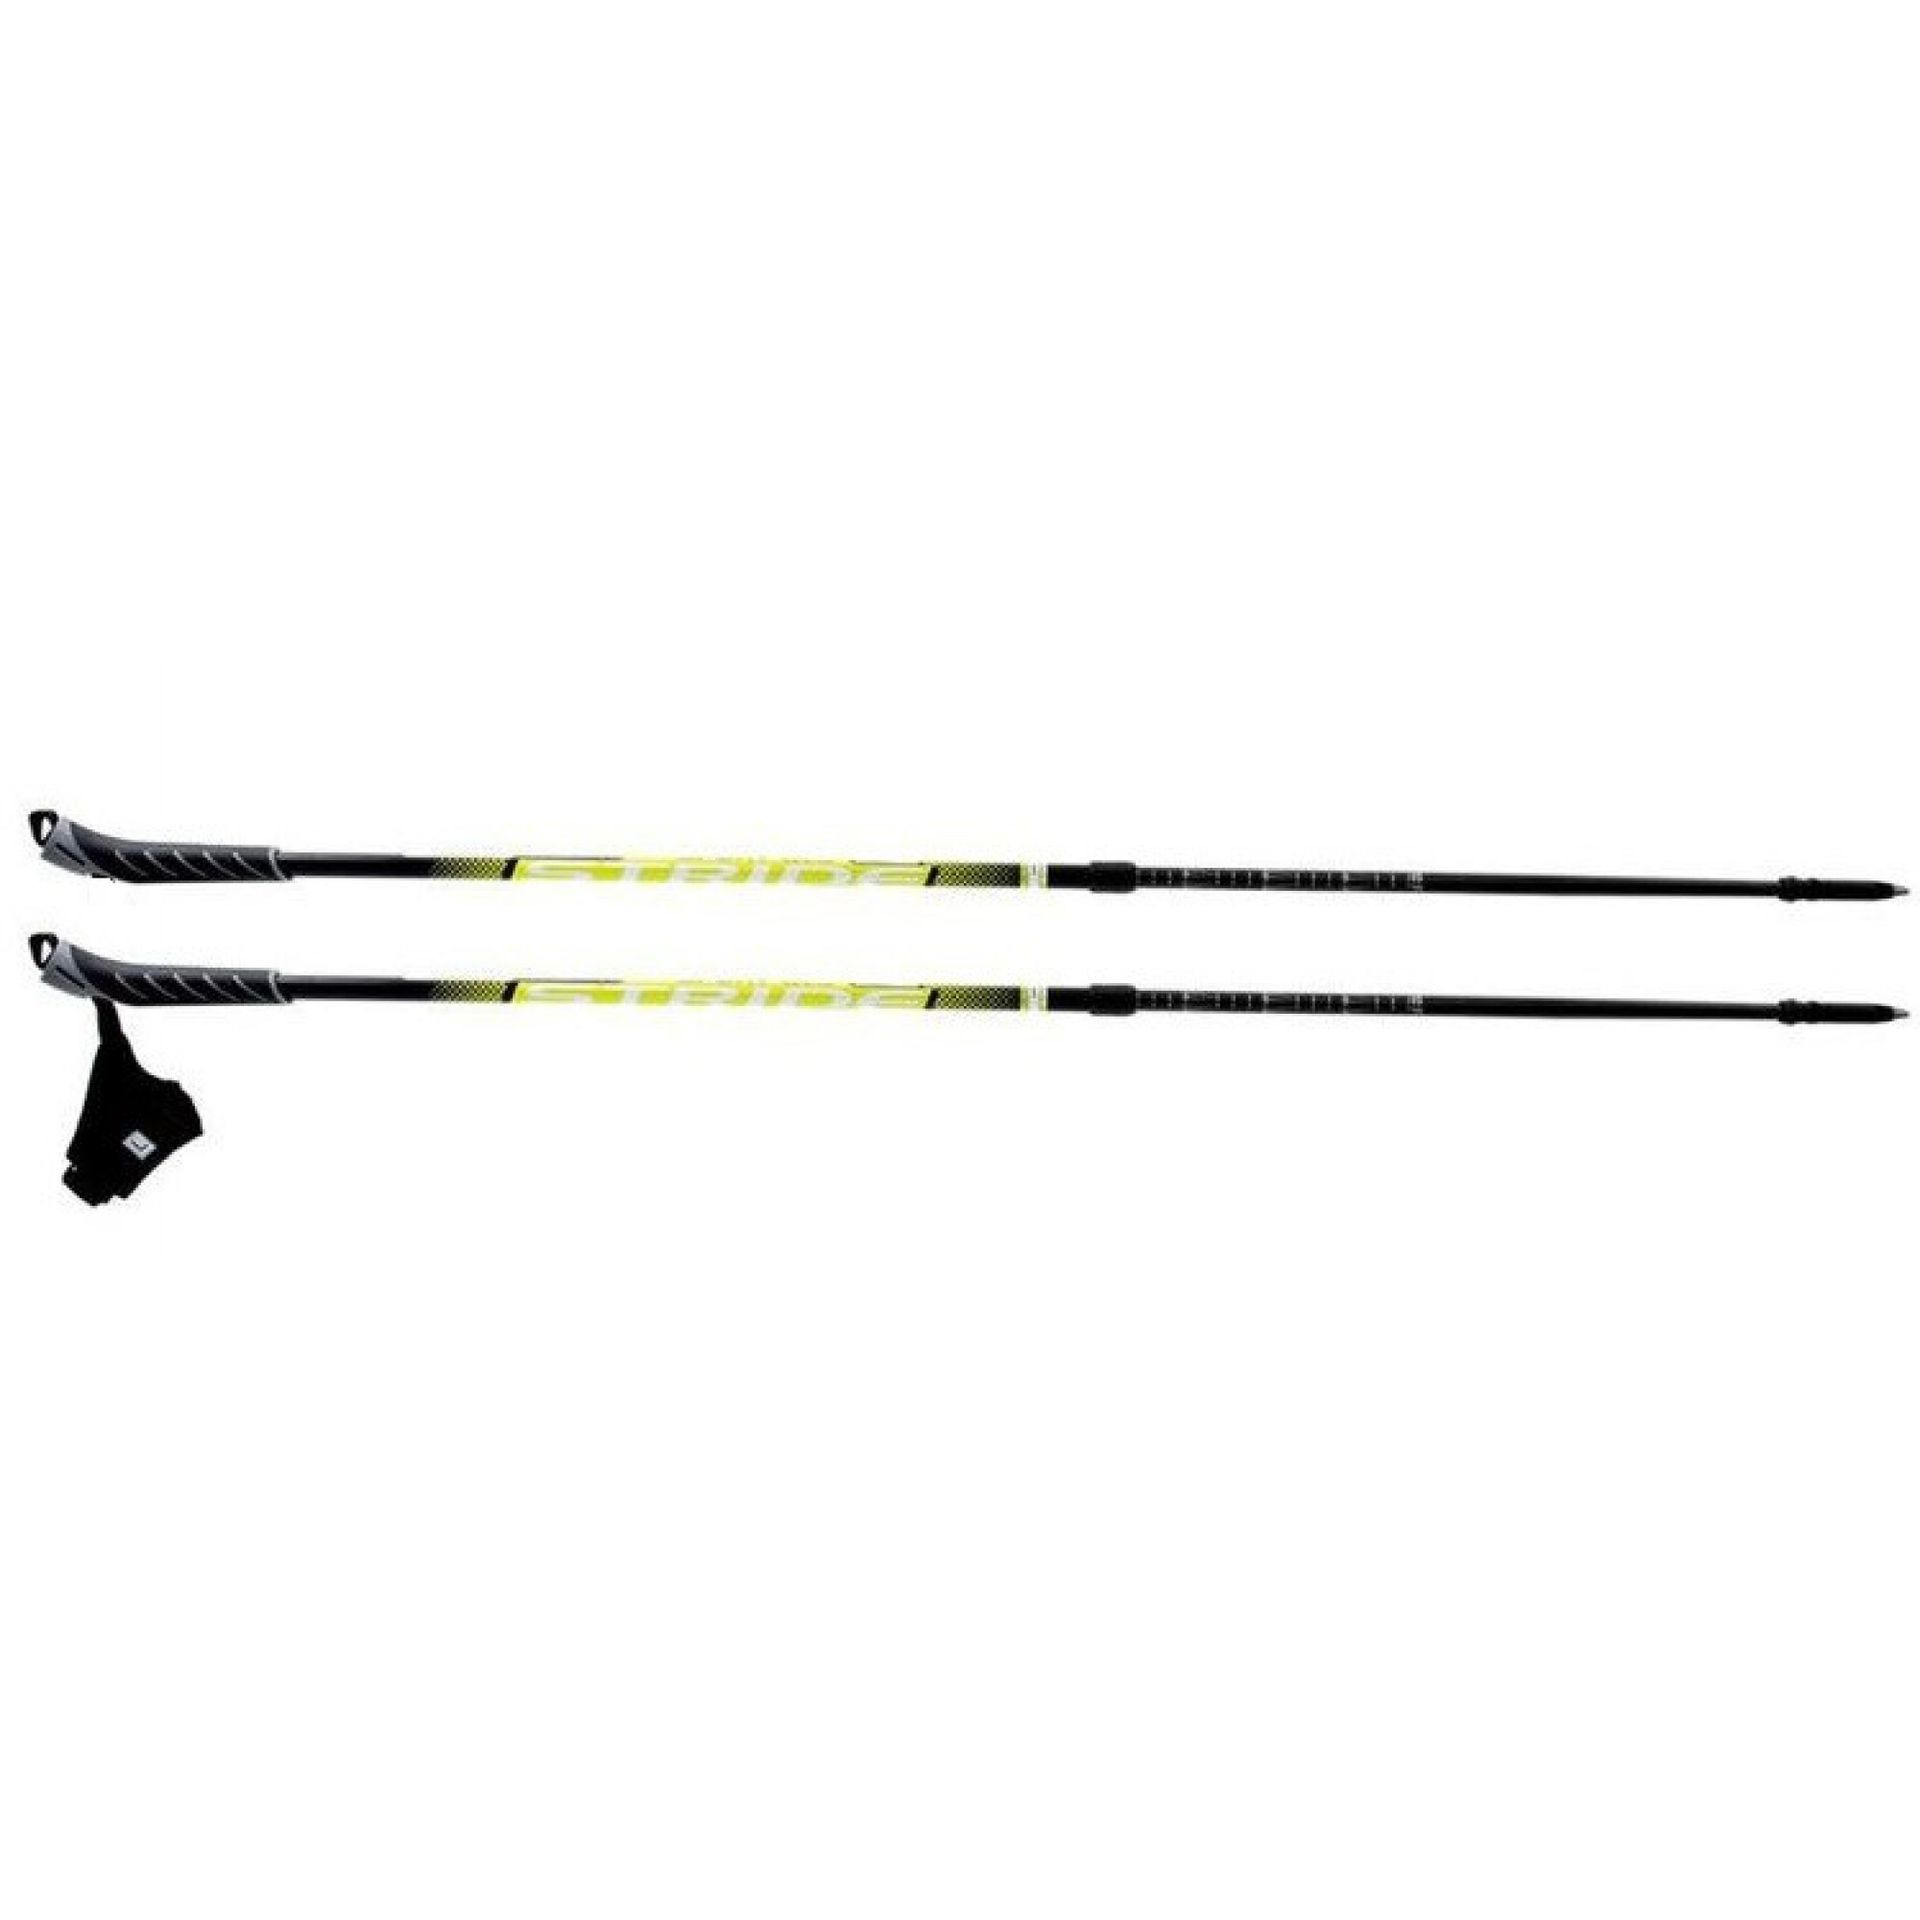 Kije nordic walking Gabel Sport QLS